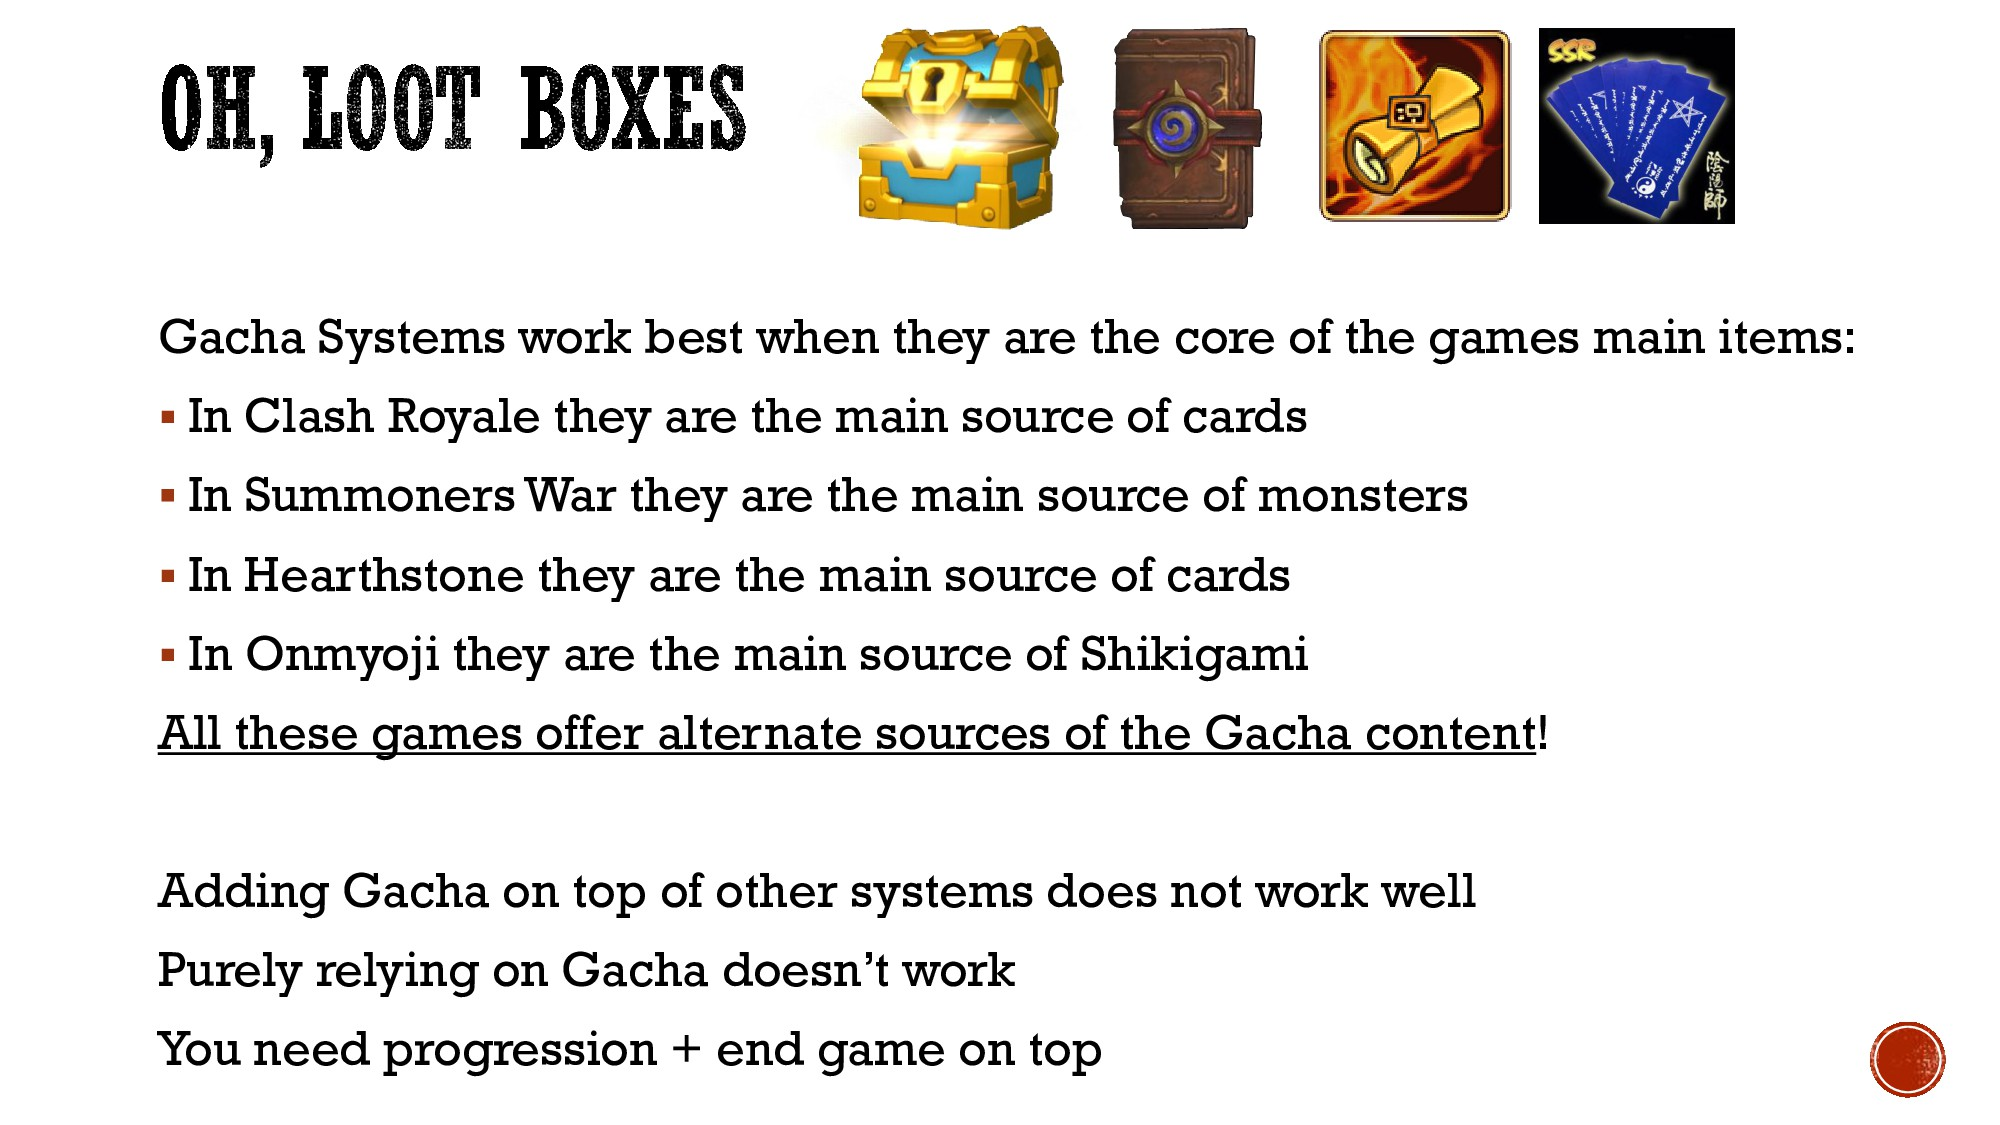 Gacha Systems work best when they are the core ...